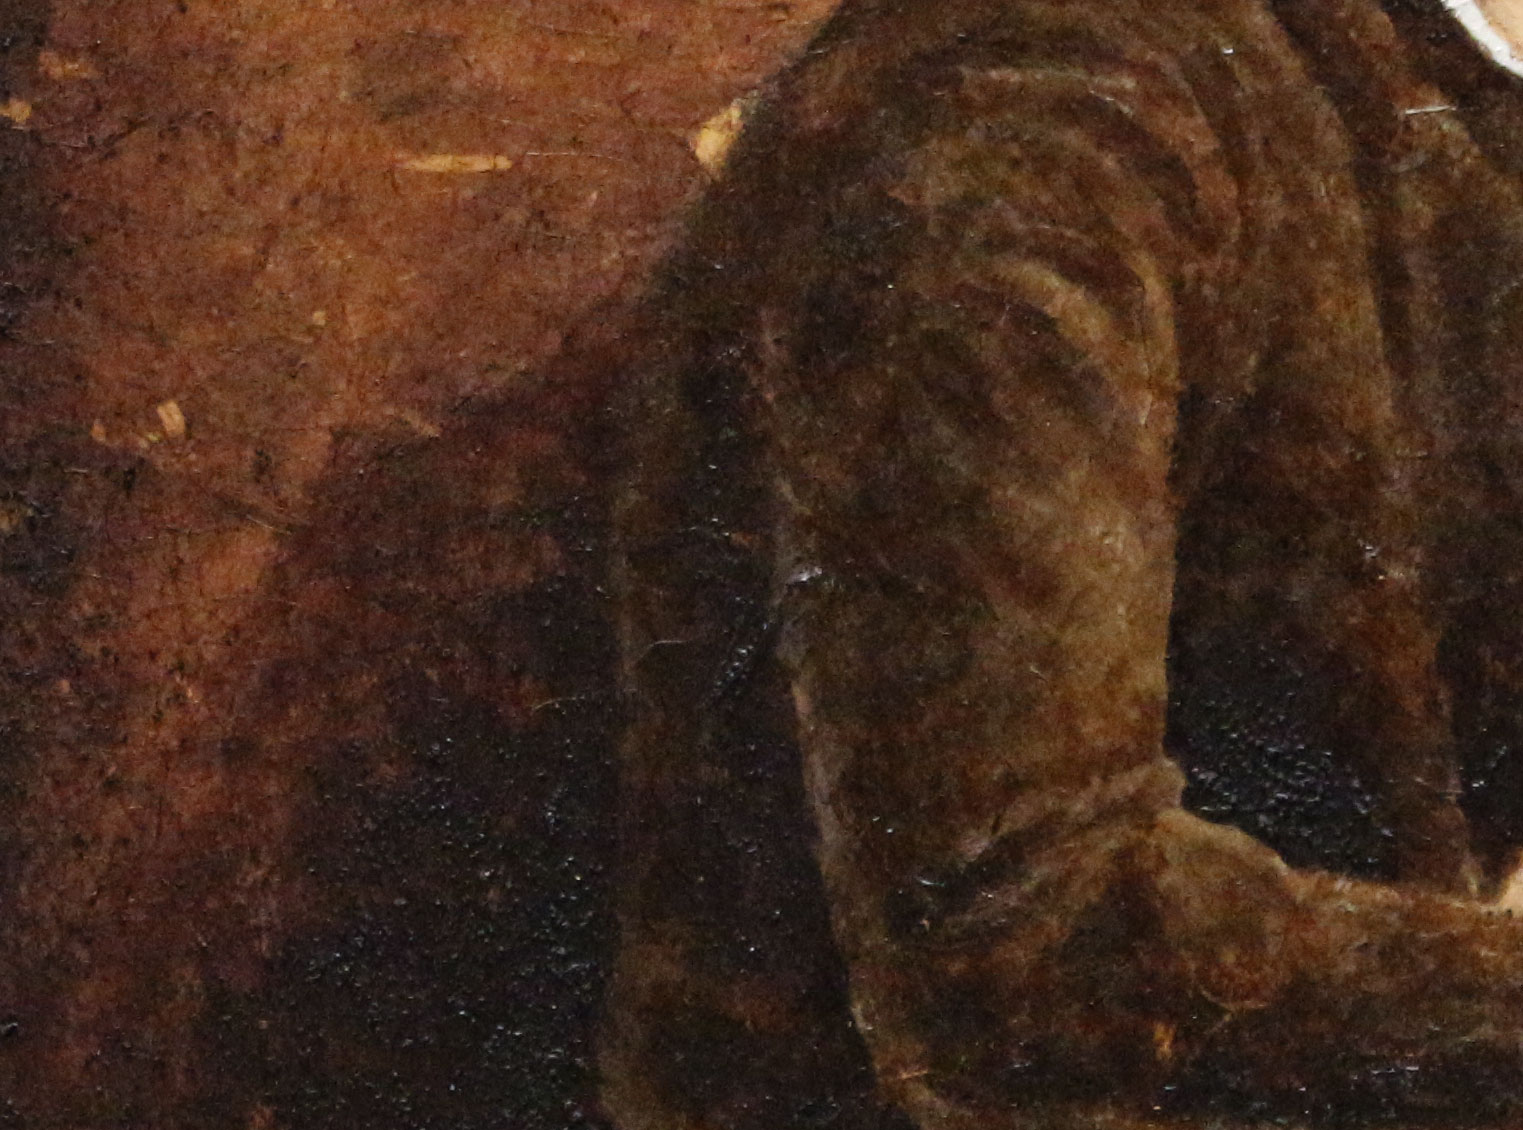 The Letter (Detail)